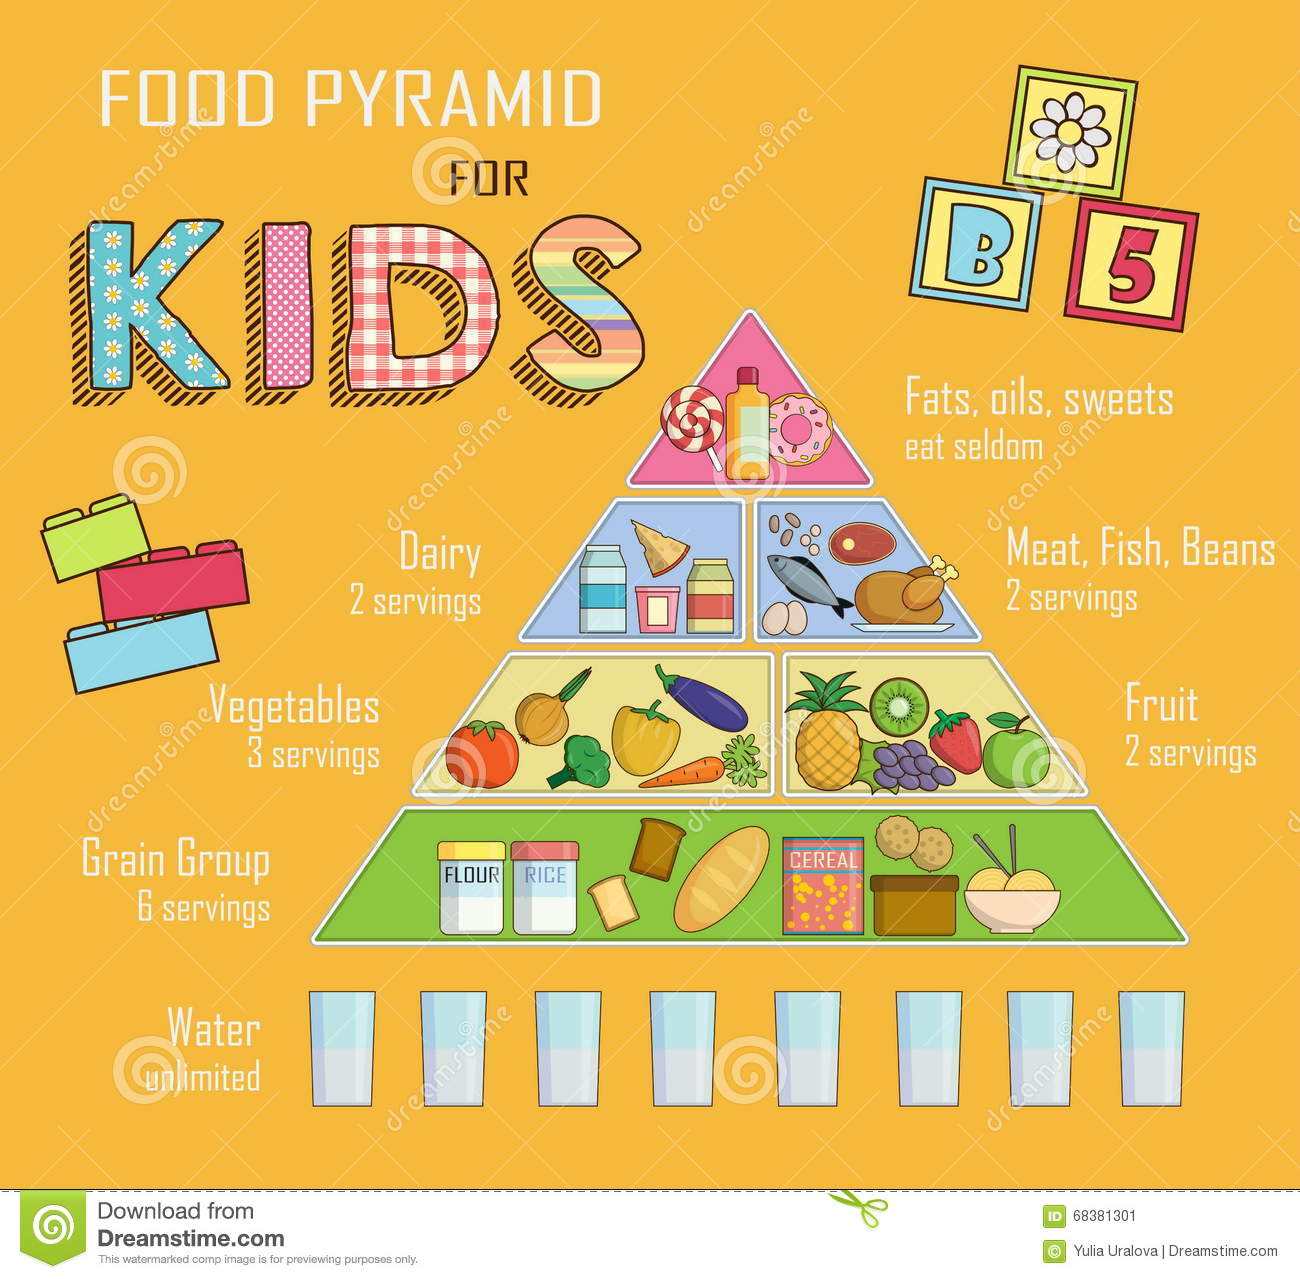 infographic chart, illustration of a food pyramid for children and